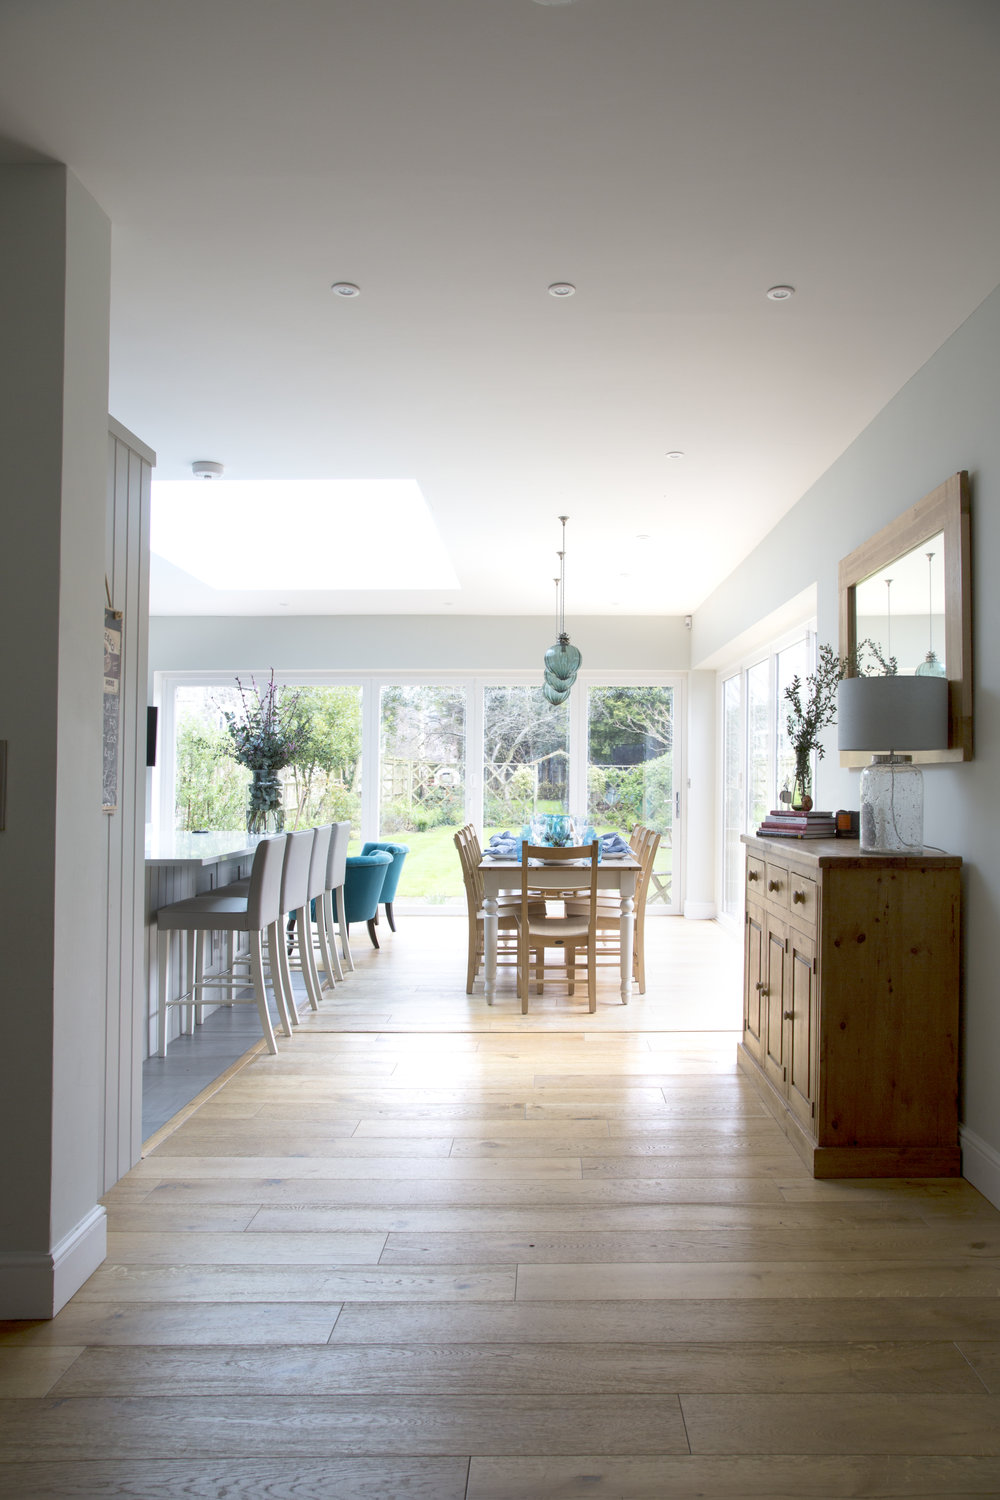 A large and bright shaker kitchen extension in Sevenoaks Kent creates a multi-purpose kitchen and dining space in this family home - Interior Design by Phoebe Oldrey of Smartstyle Interiors